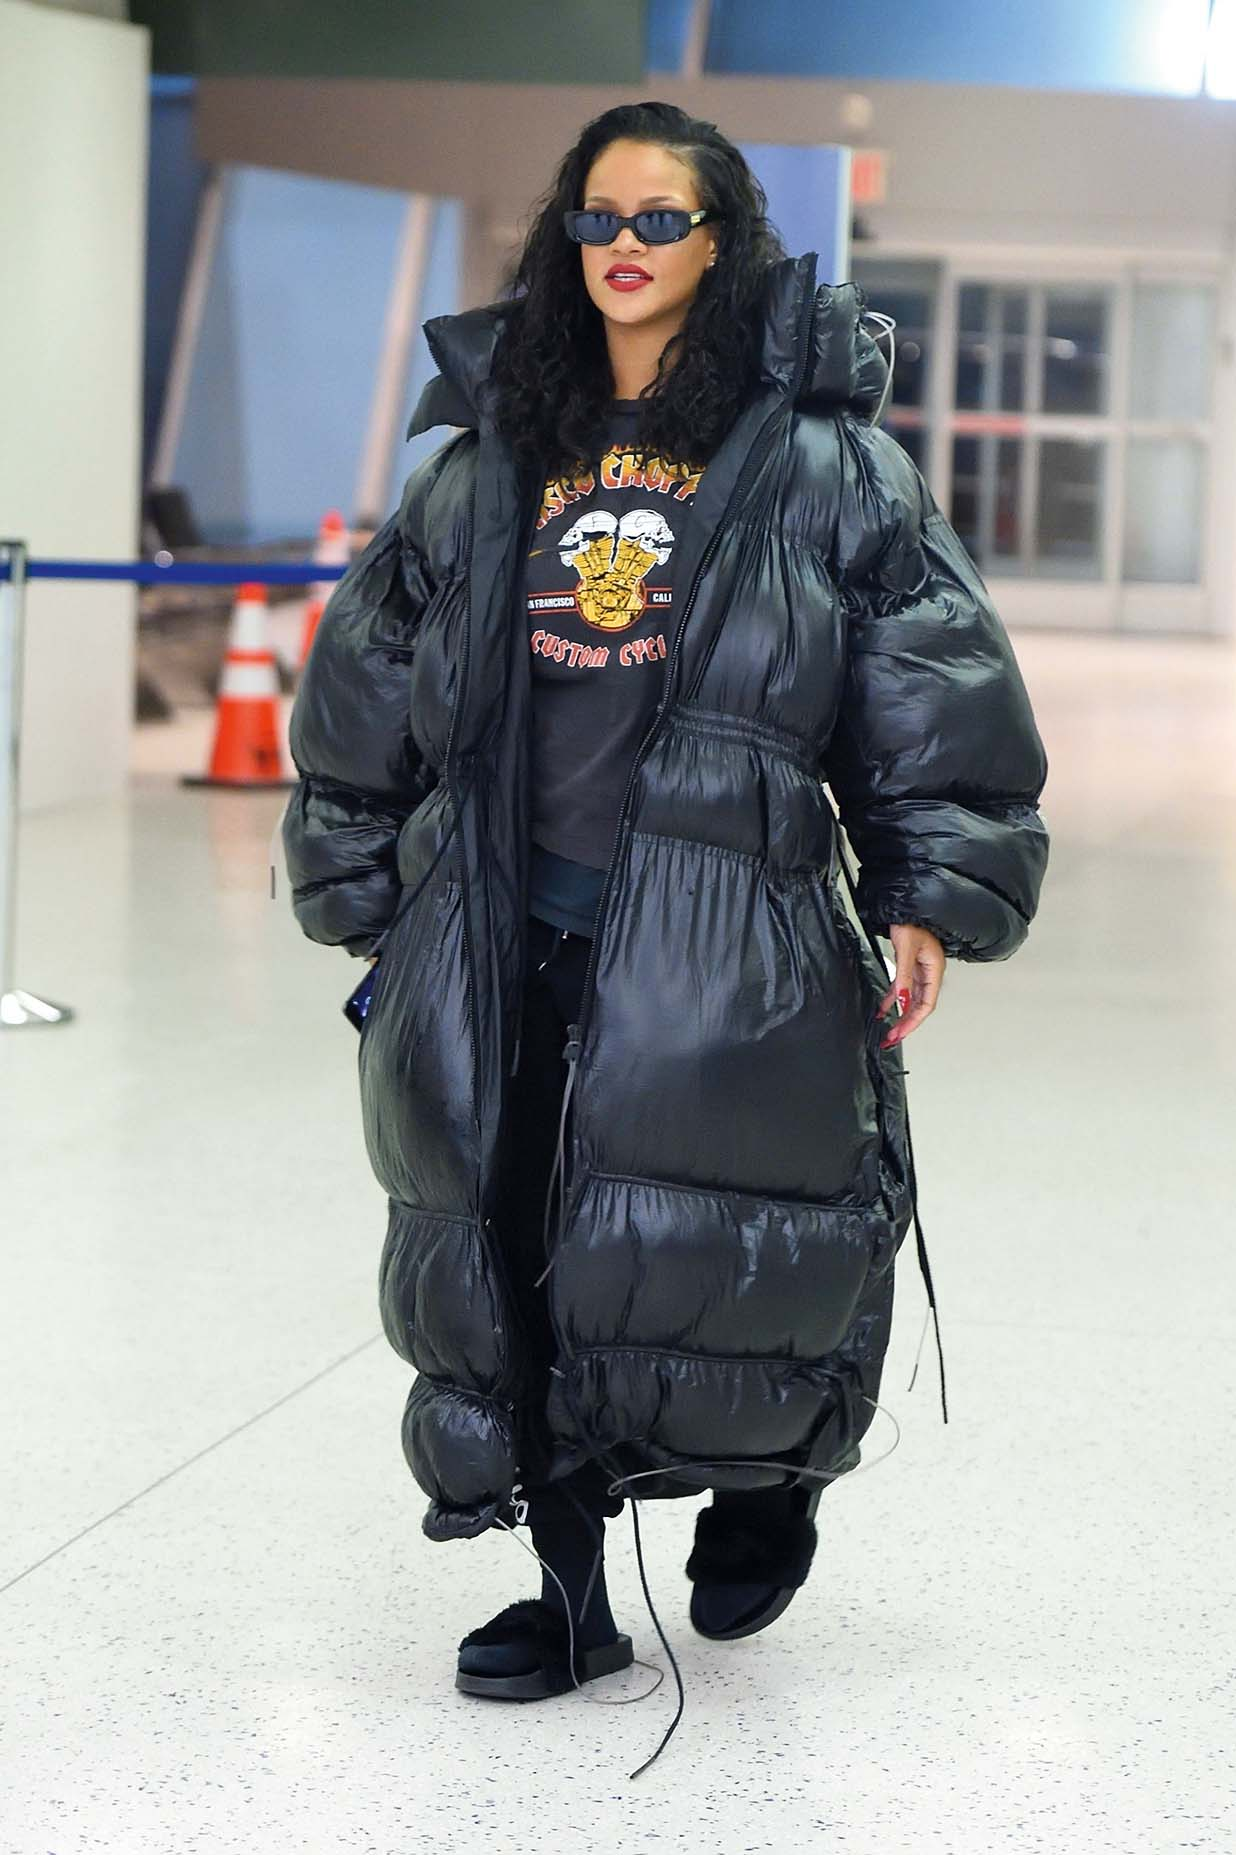 New York, NY  - Rihanna arrives at JFK in oversized coat for a flight back to London after a successful Savage Fenty pop up launch  Pictured: Rihanna    *UK Clients - Pictures Containing Children Please Pixelate Face Prior To Publication*, Image: 371264335, License: Rights-managed, Restrictions: , Model Release: no, Credit line: Profimedia, AKM-GSI